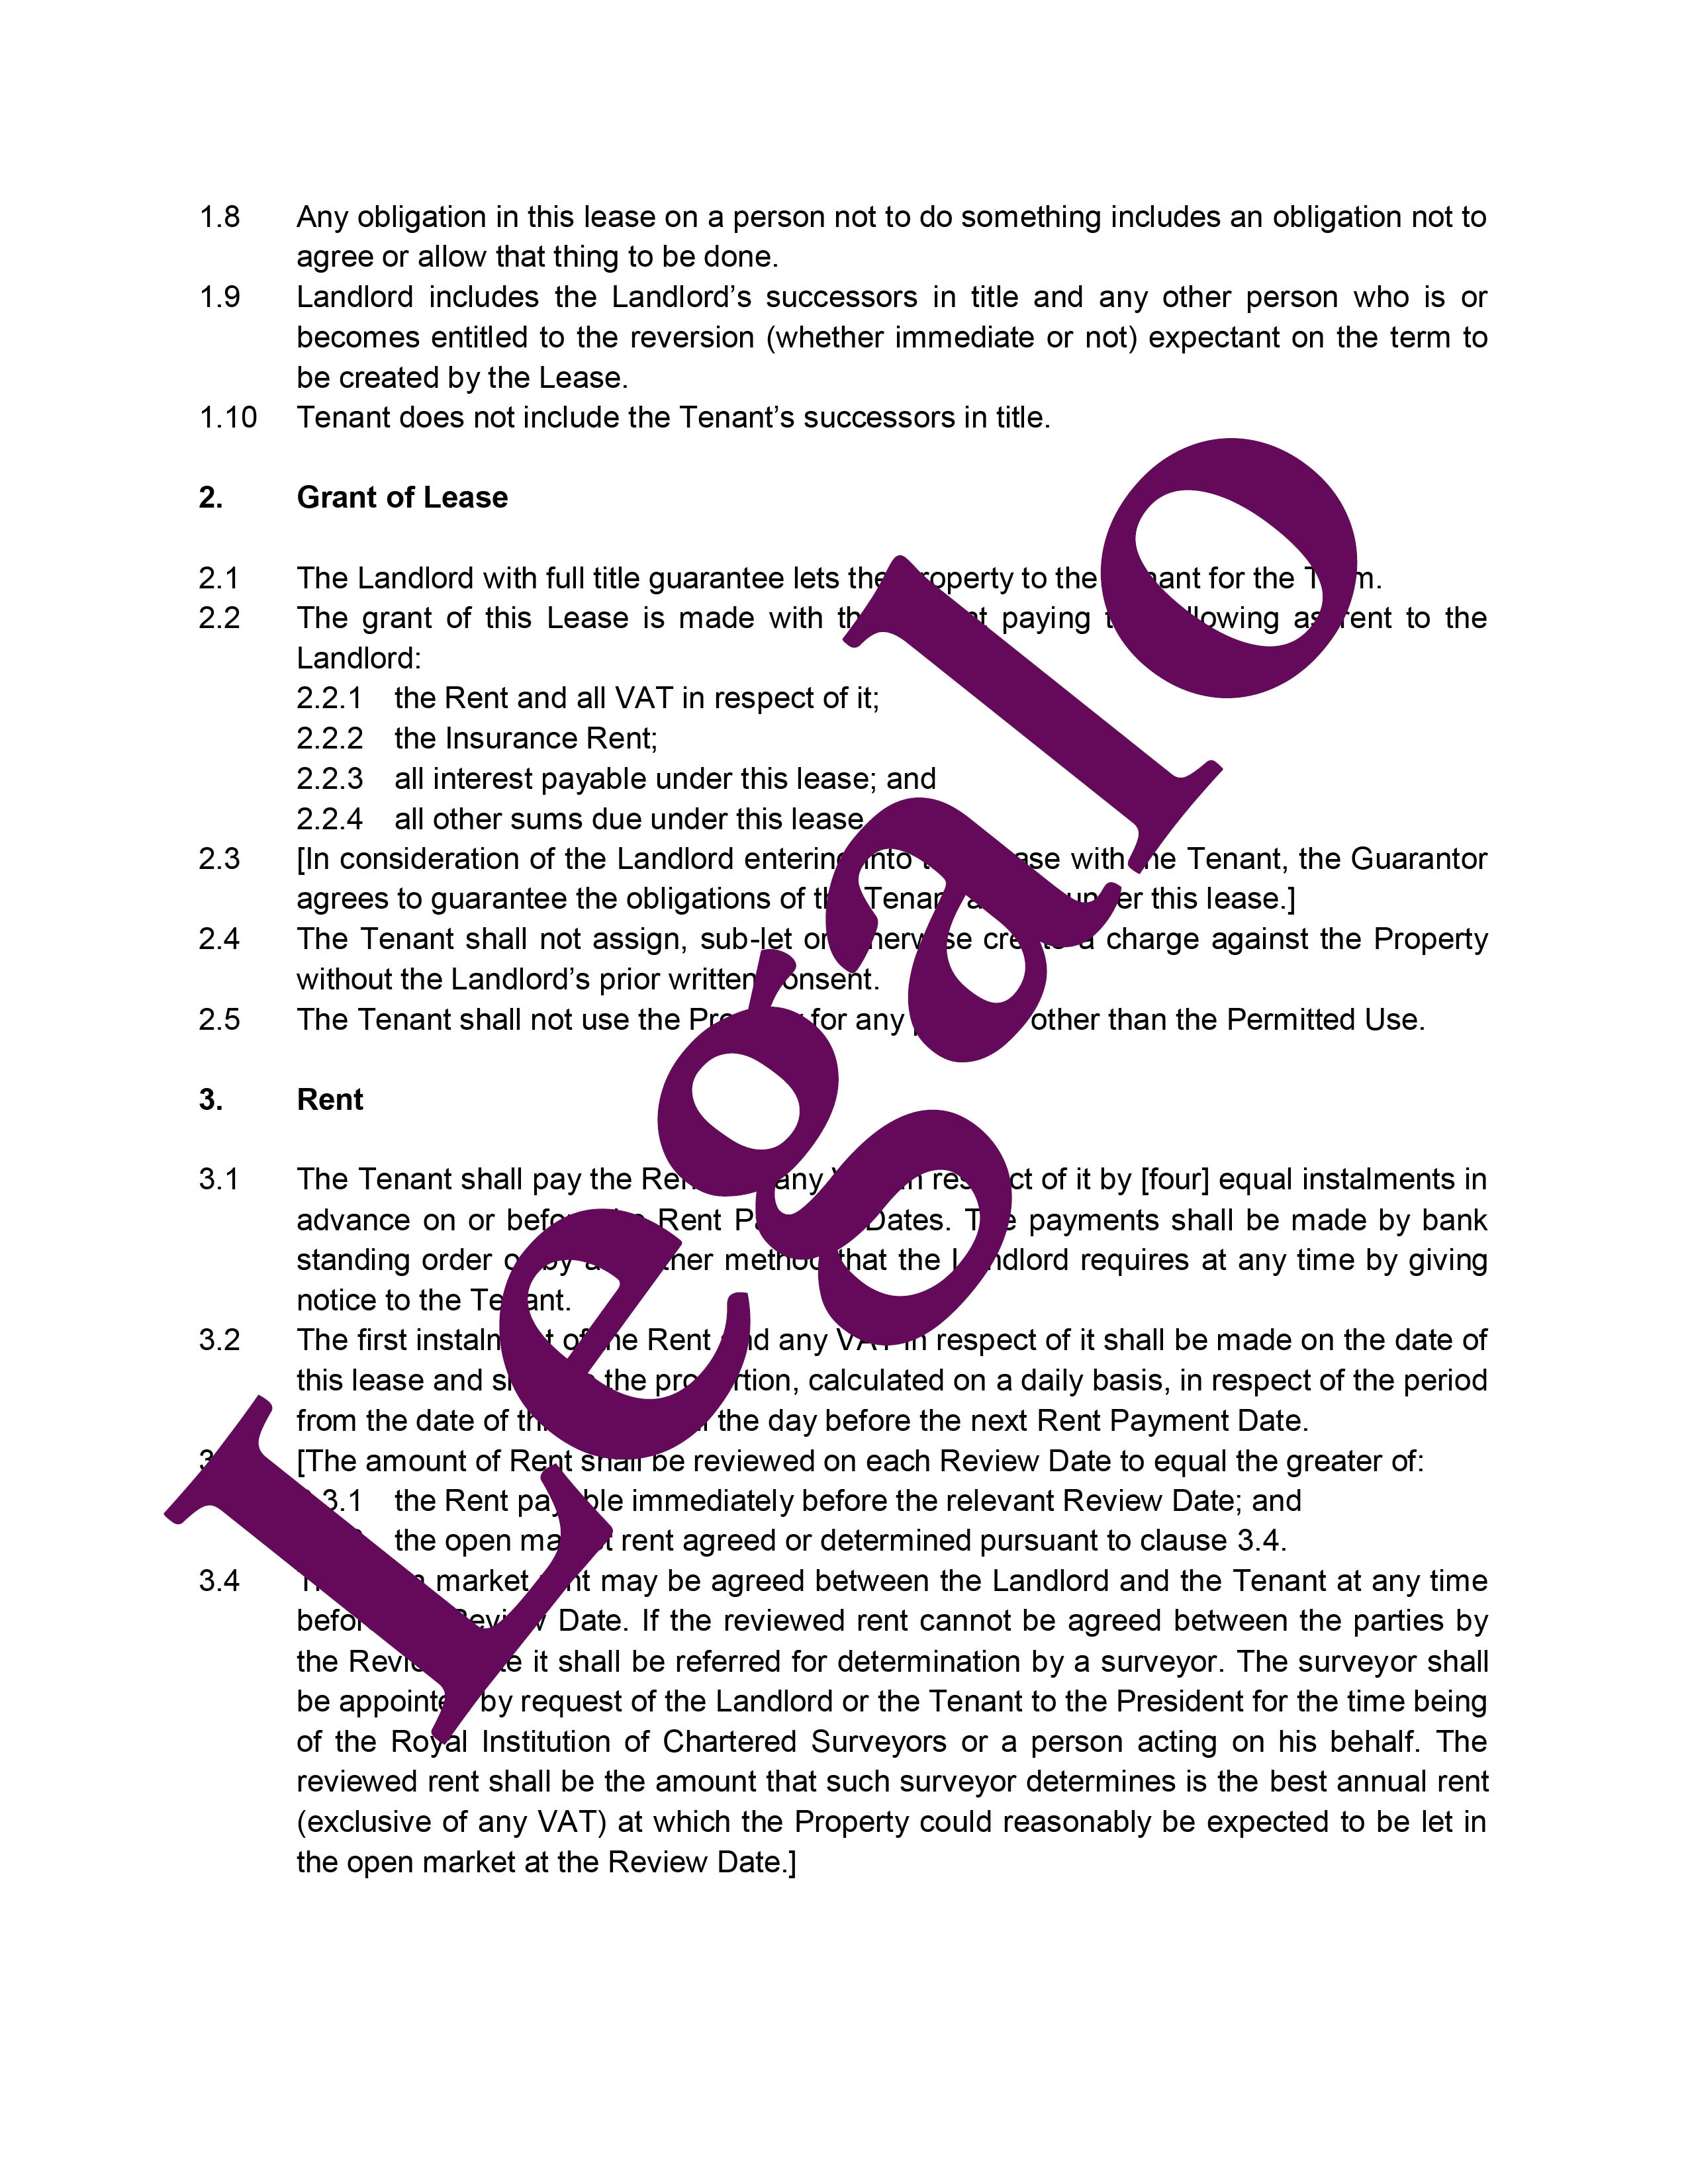 Commercial lease agreement preview image page 3